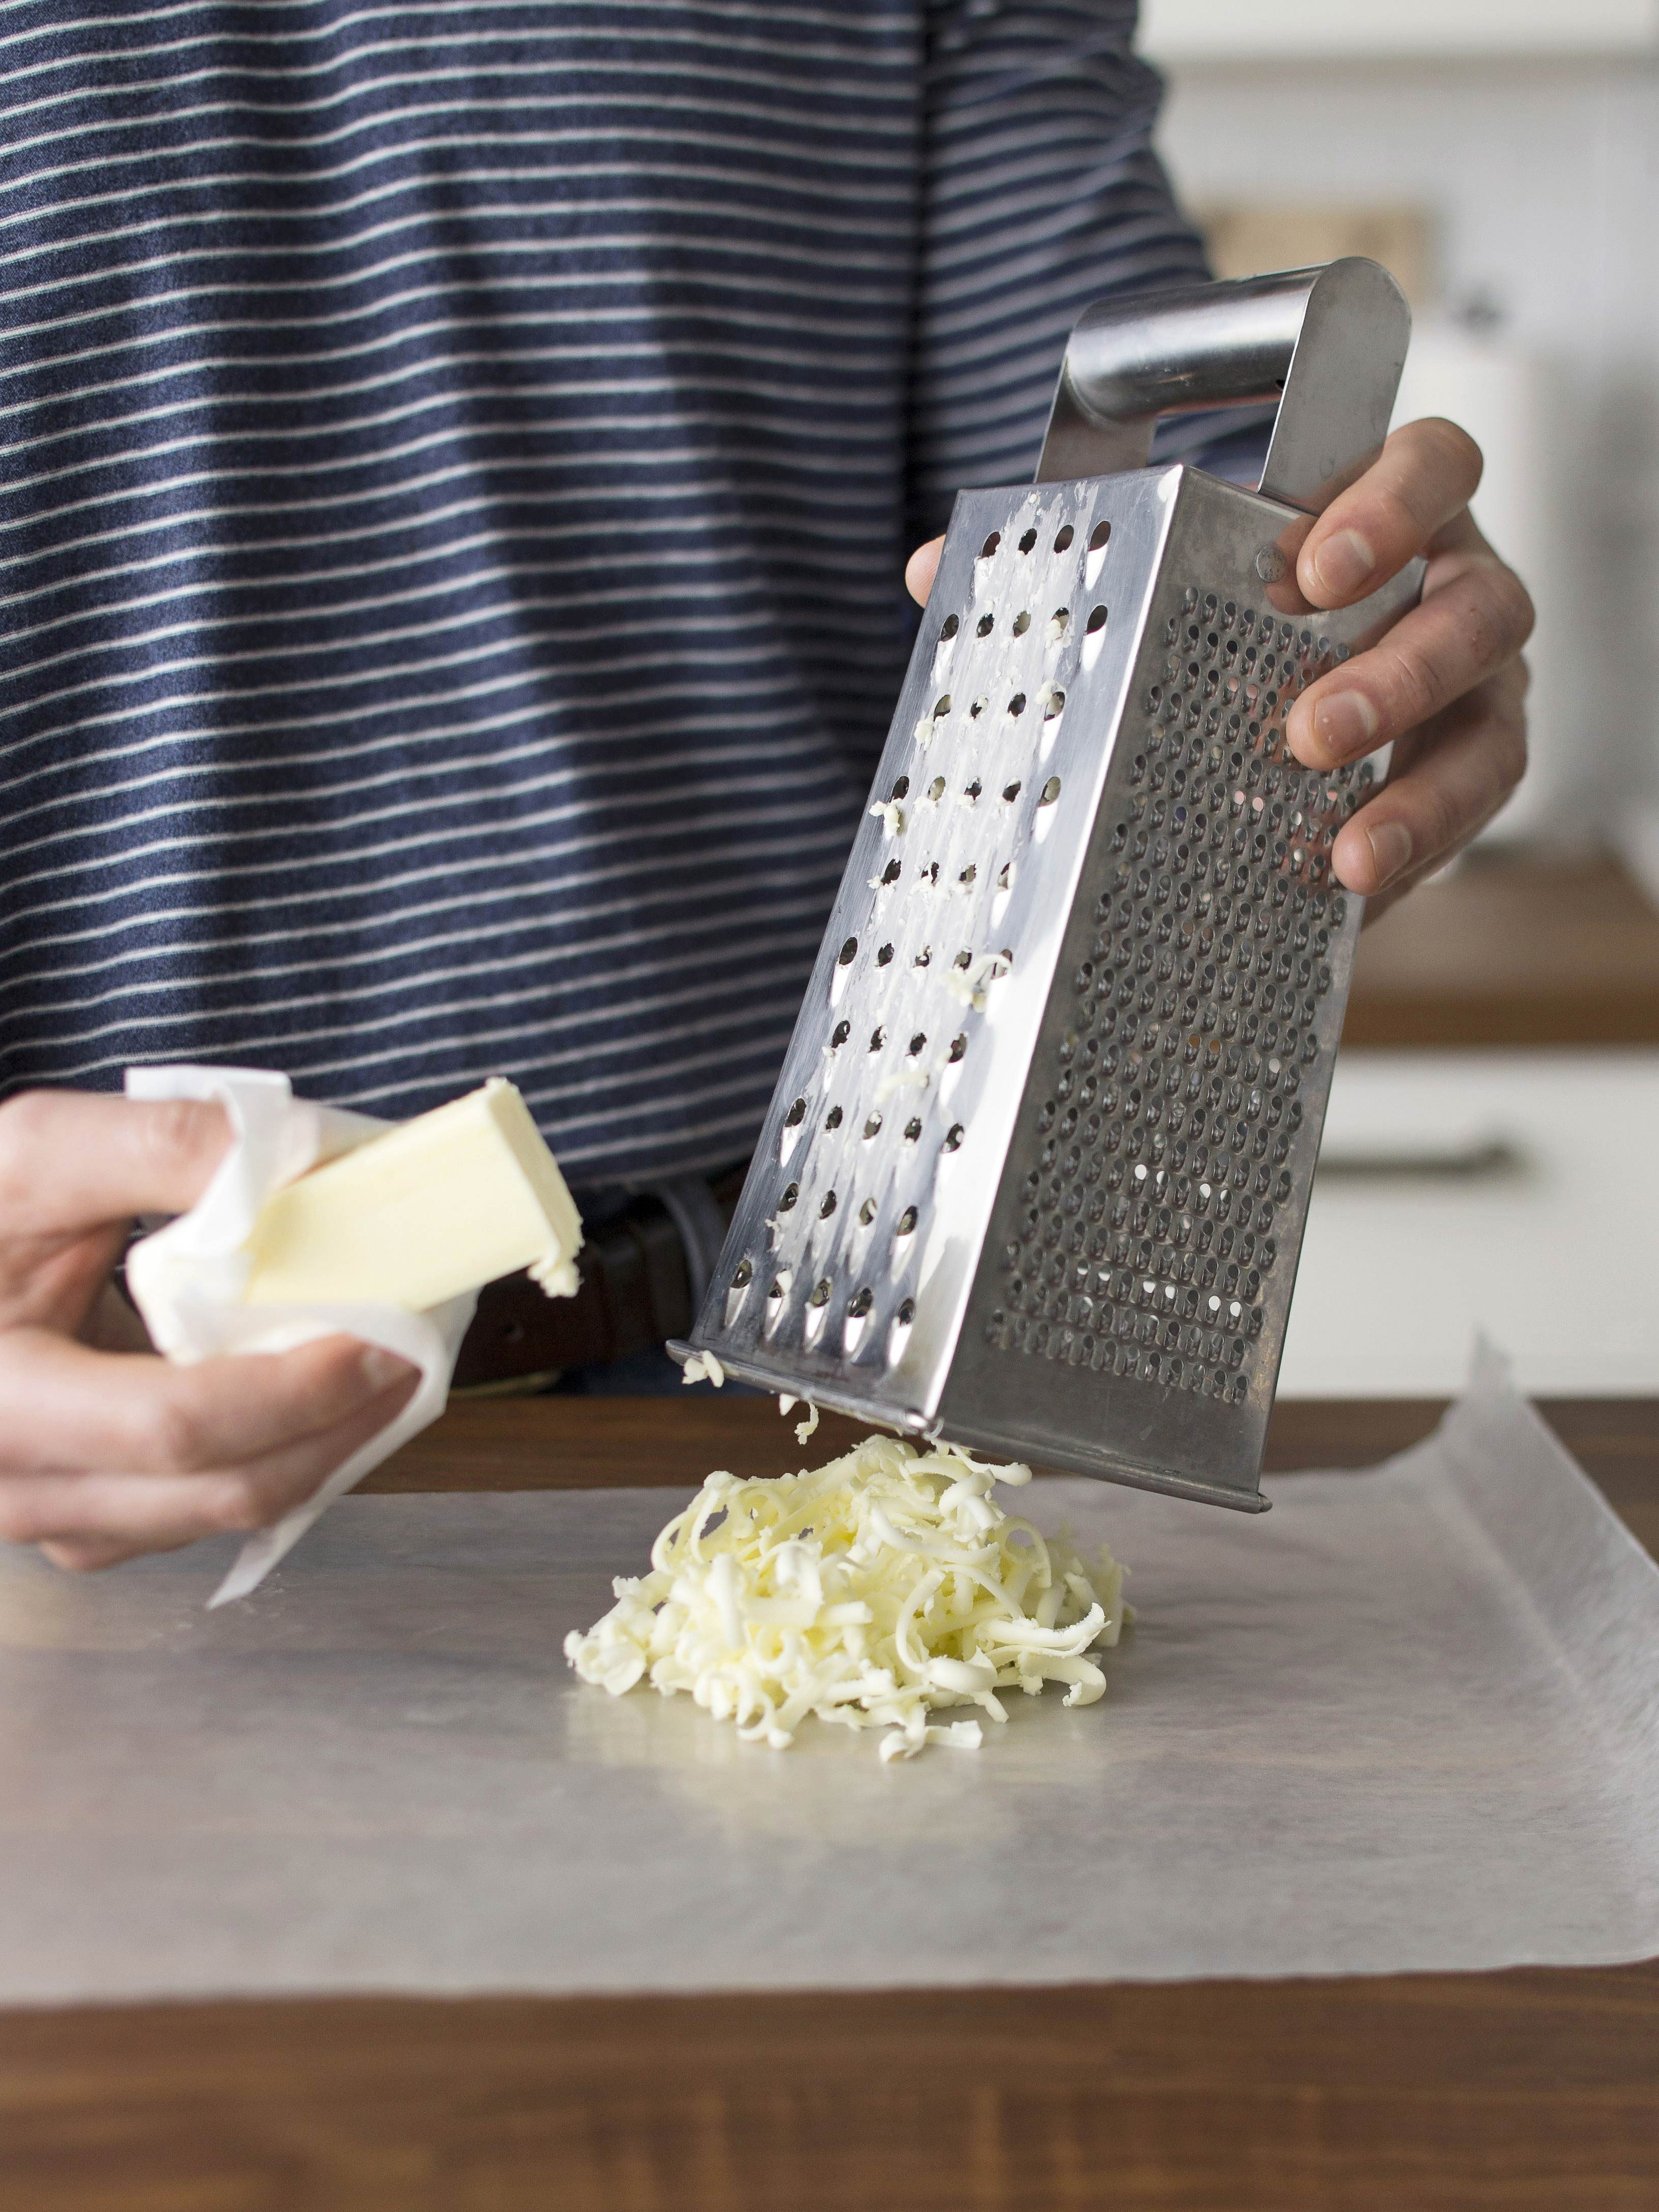 grate butter on cheese grater